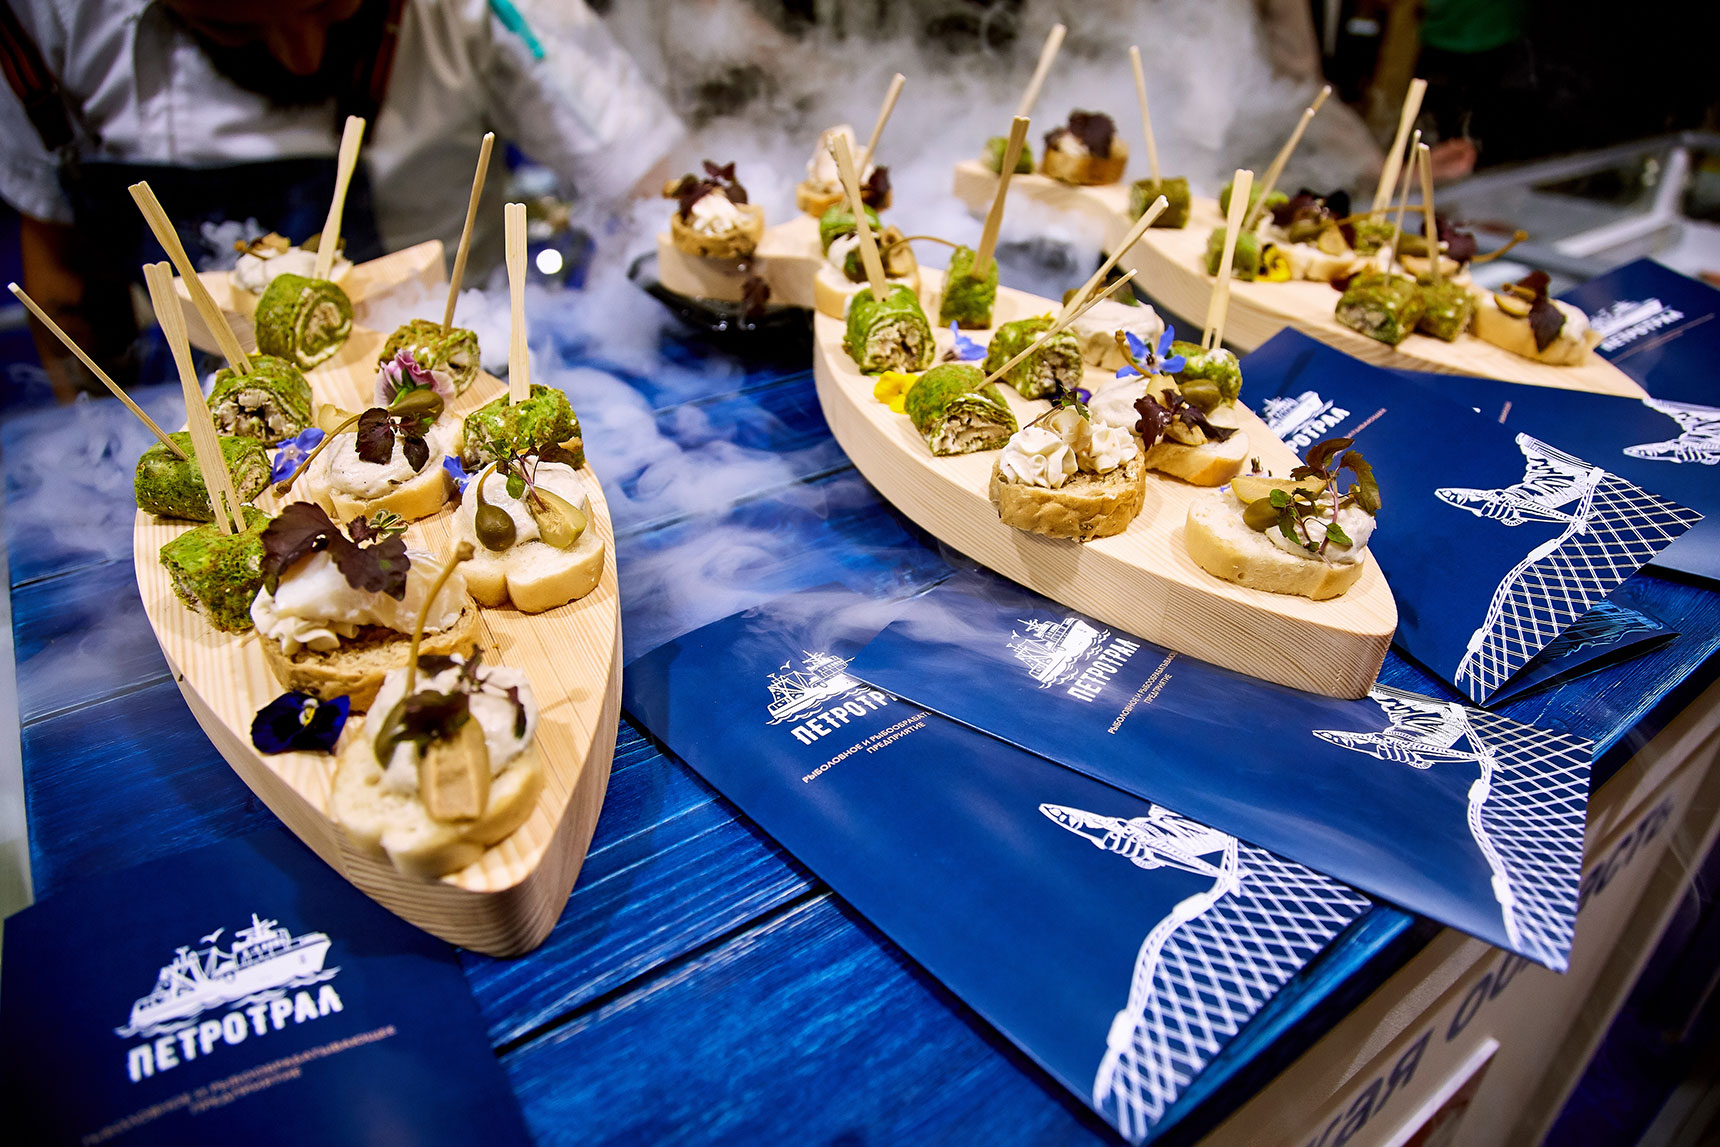 Tasty exhibition: guests of SEAFOOD EXPO RUSSIA 2019 were offered more than 50 different seafood and fish dishes